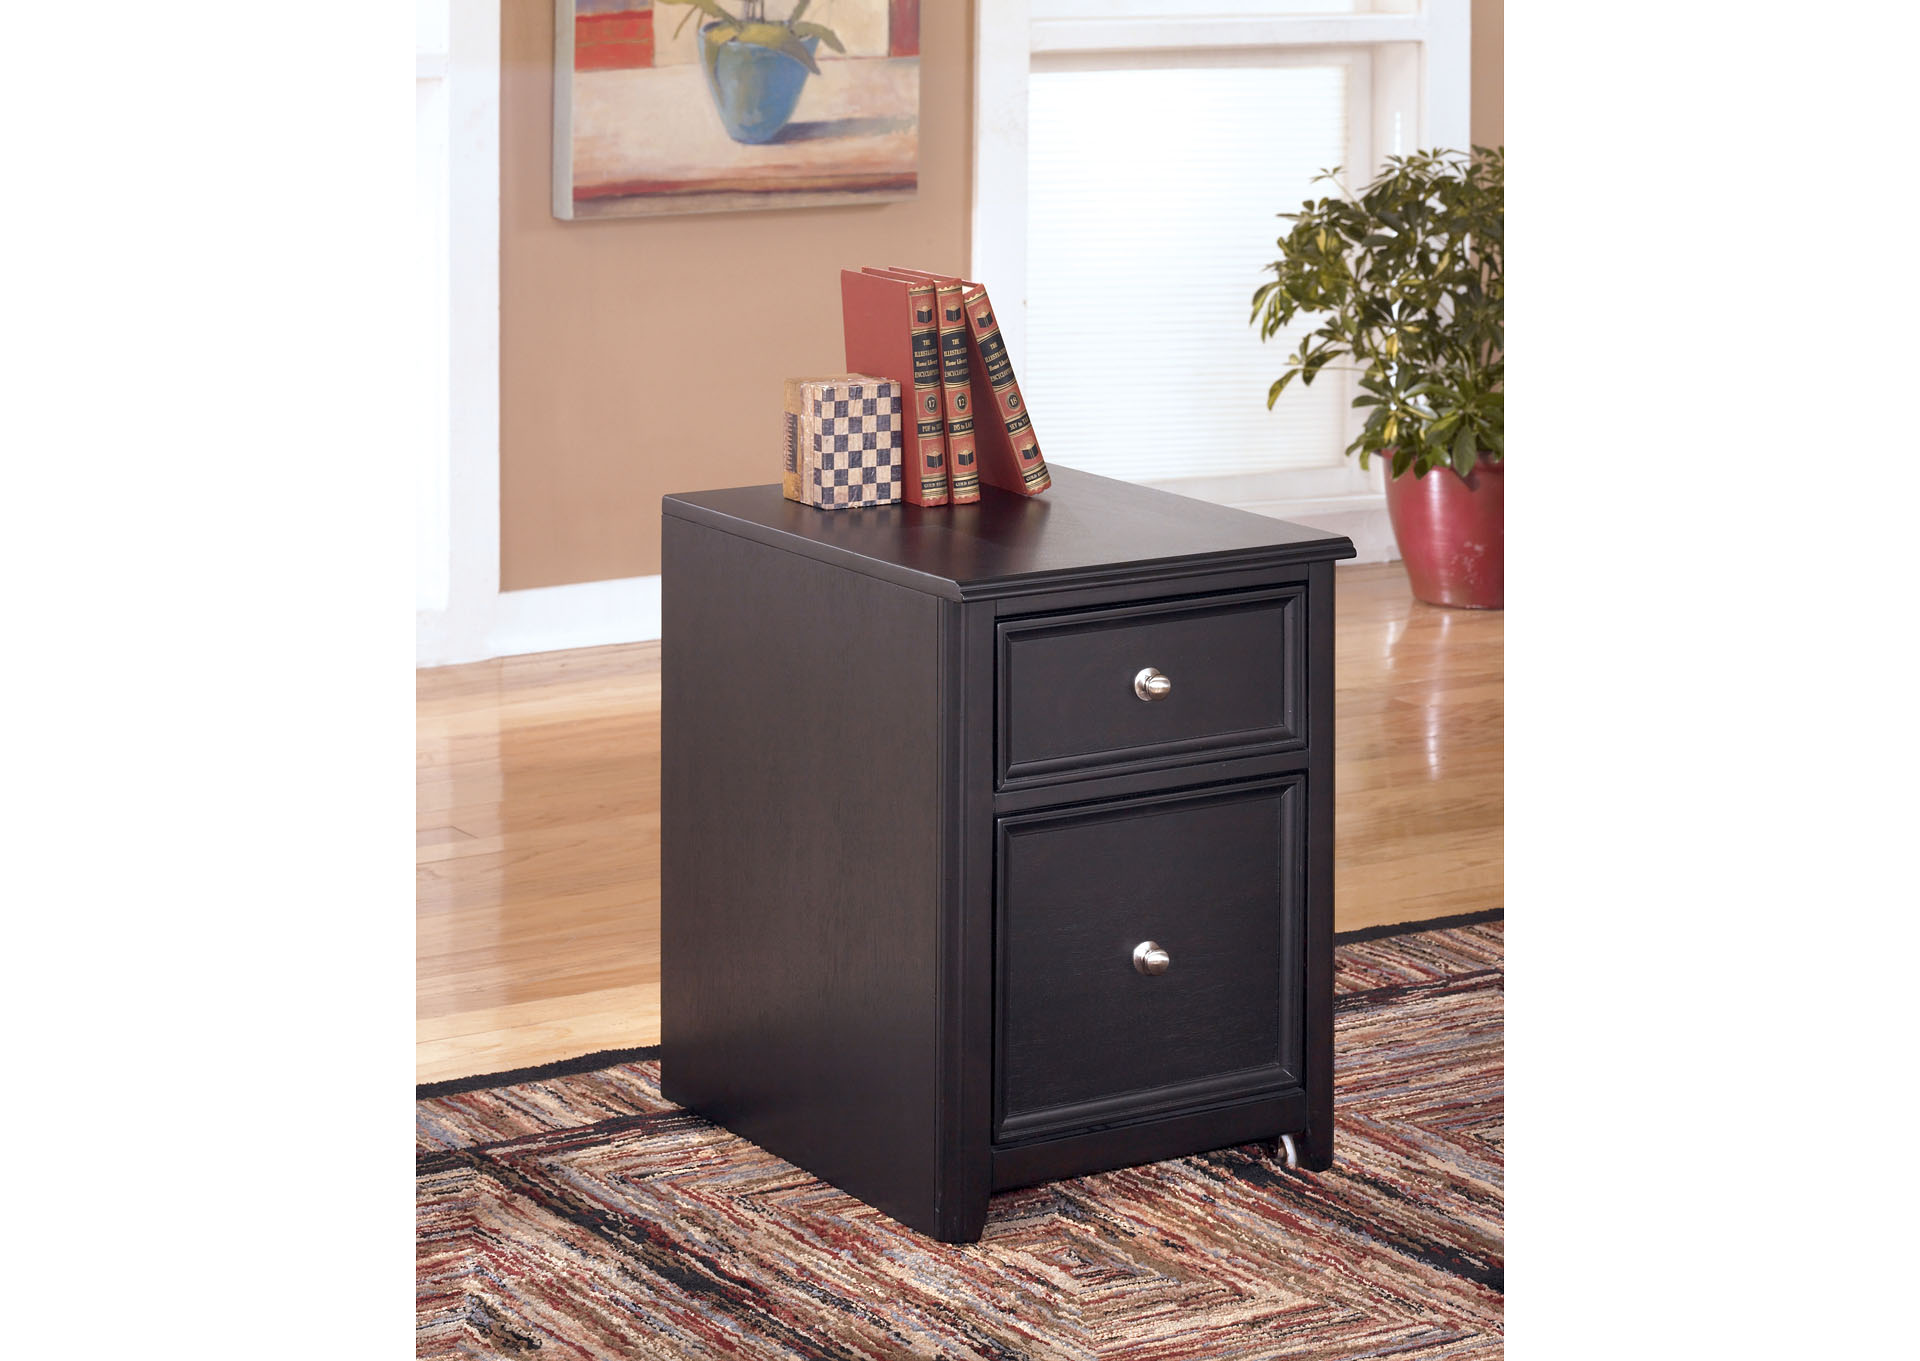 Carlyle 2 Drawer Mobile File Cabinet,Signature Design by Ashley